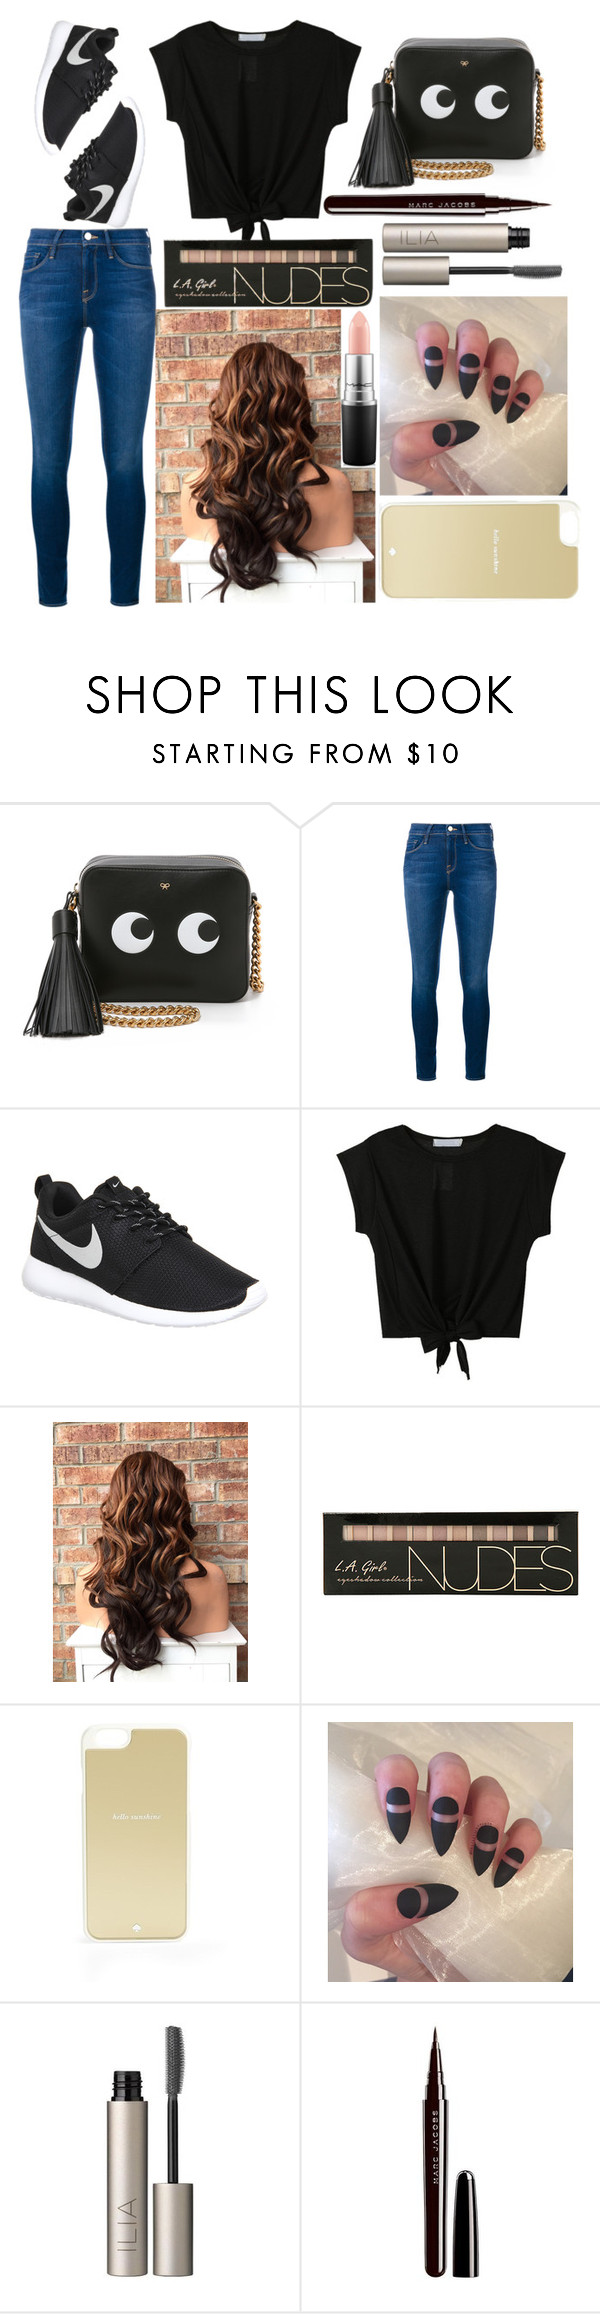 """""""Rosa: February 16, 2016"""" by disneyfreaks39 ❤ liked on Polyvore featuring Anya Hindmarch, Frame Denim, NIKE, Kate Spade, Ilia, Marc Jacobs and MAC Cosmetics"""